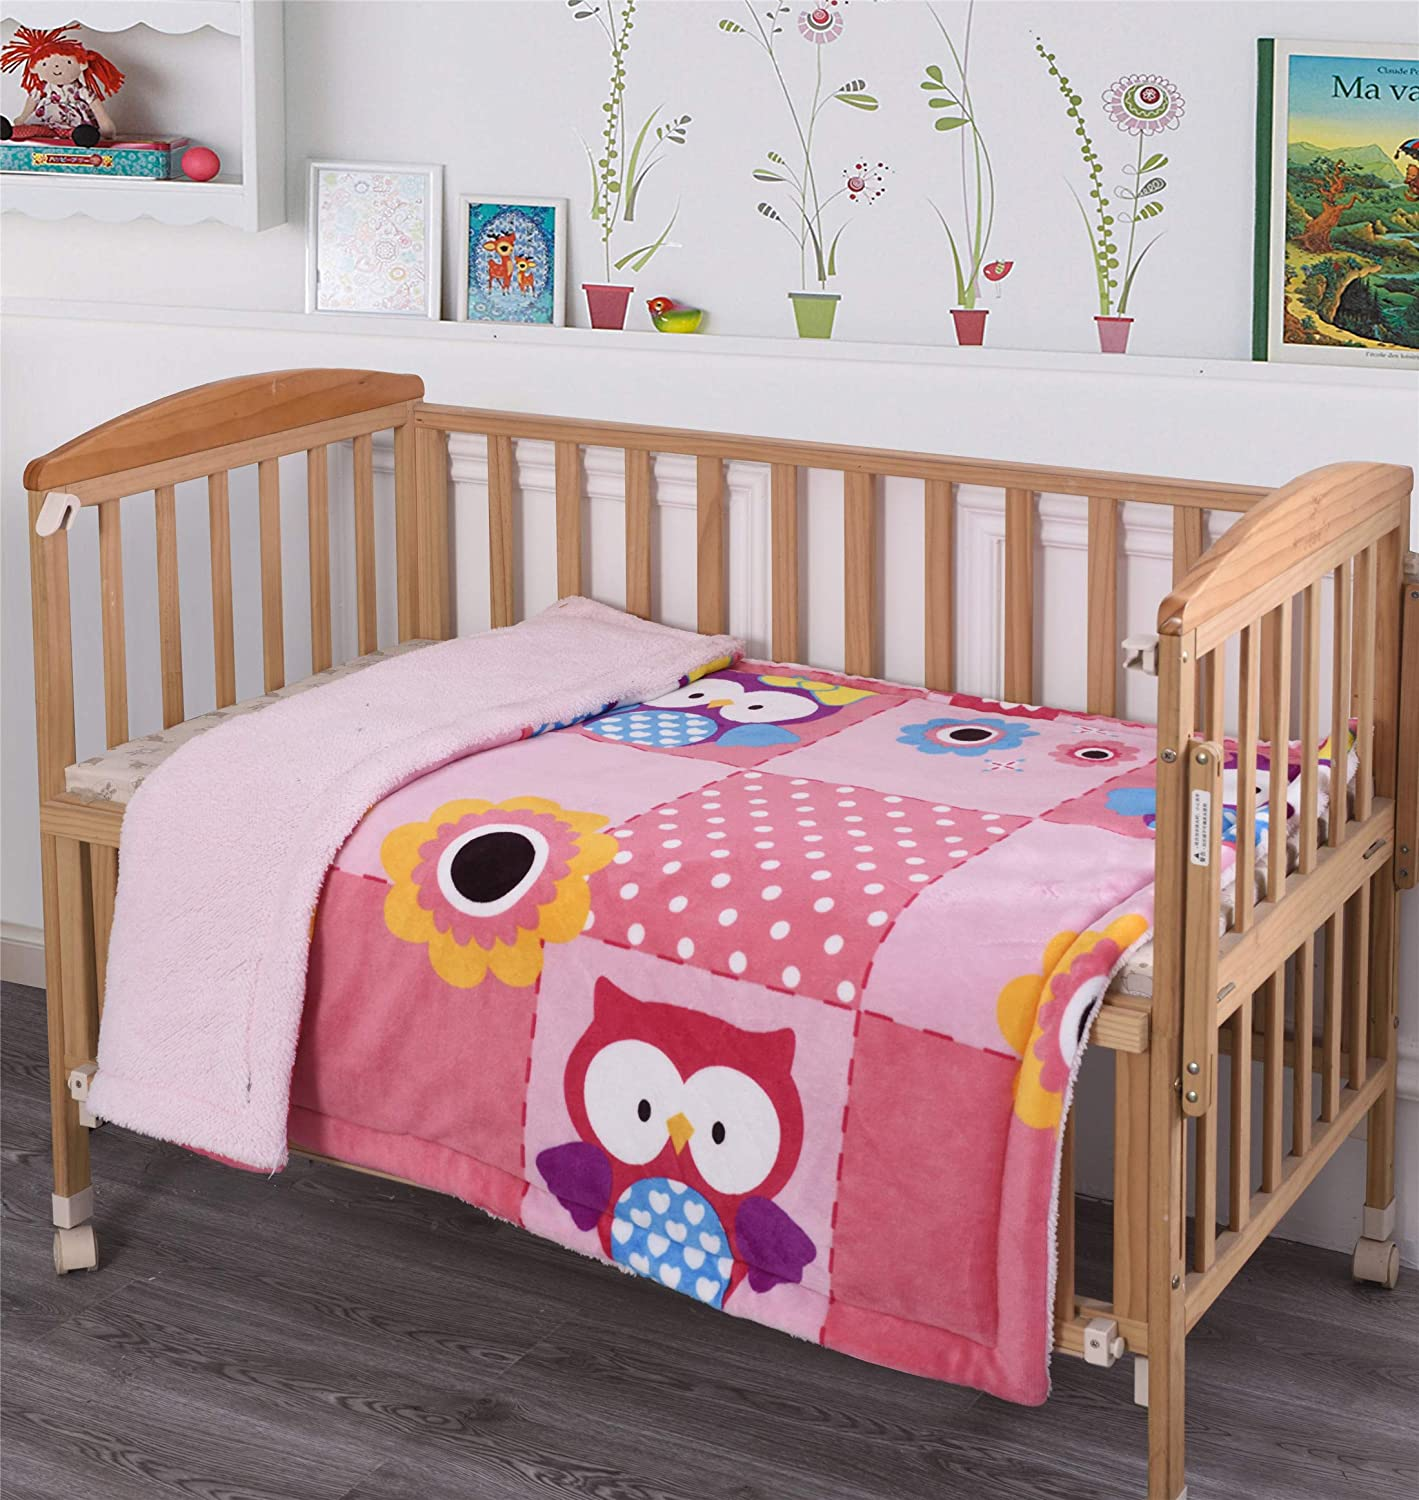 Elegant Home Kids Soft & Warm Pink Owl Design Sherpa Baby Toddler Girl Blanket Printed Borrego Stroller or Baby Crib or Toddler Bed Blanket Plush Throw 40X50 (Owls)